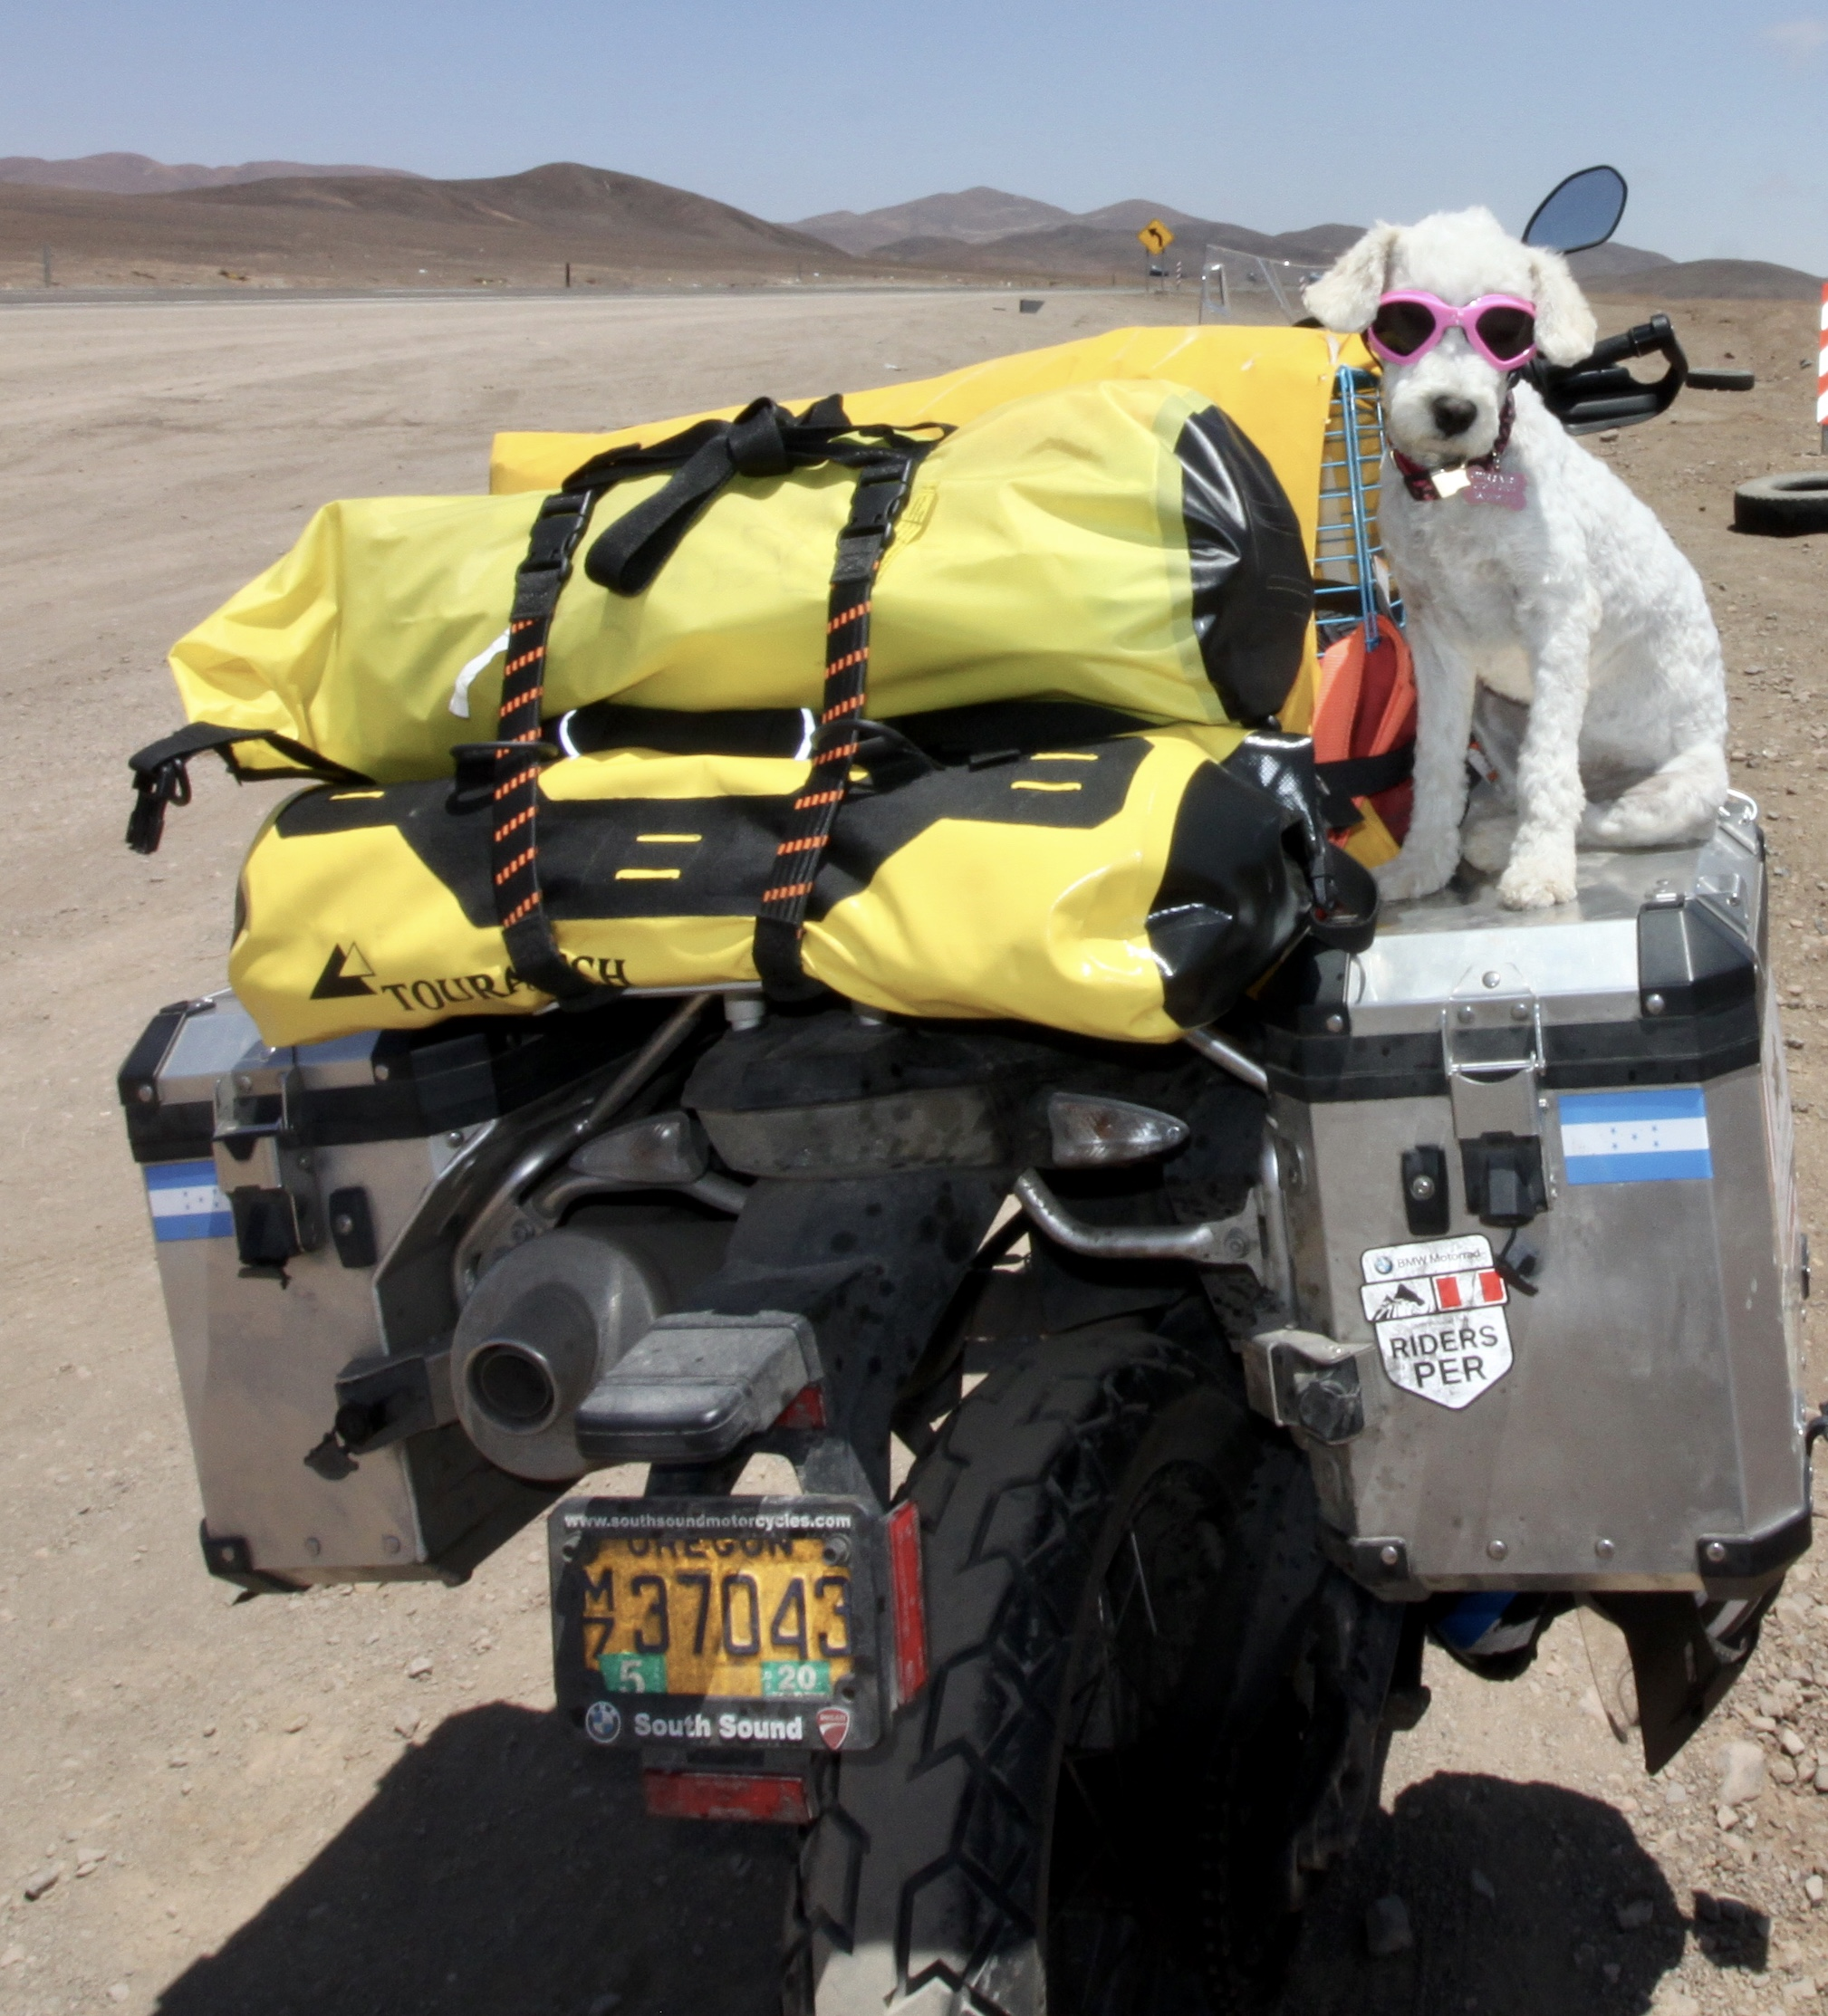 Suri is ready to hit the road and rescue that little dog.